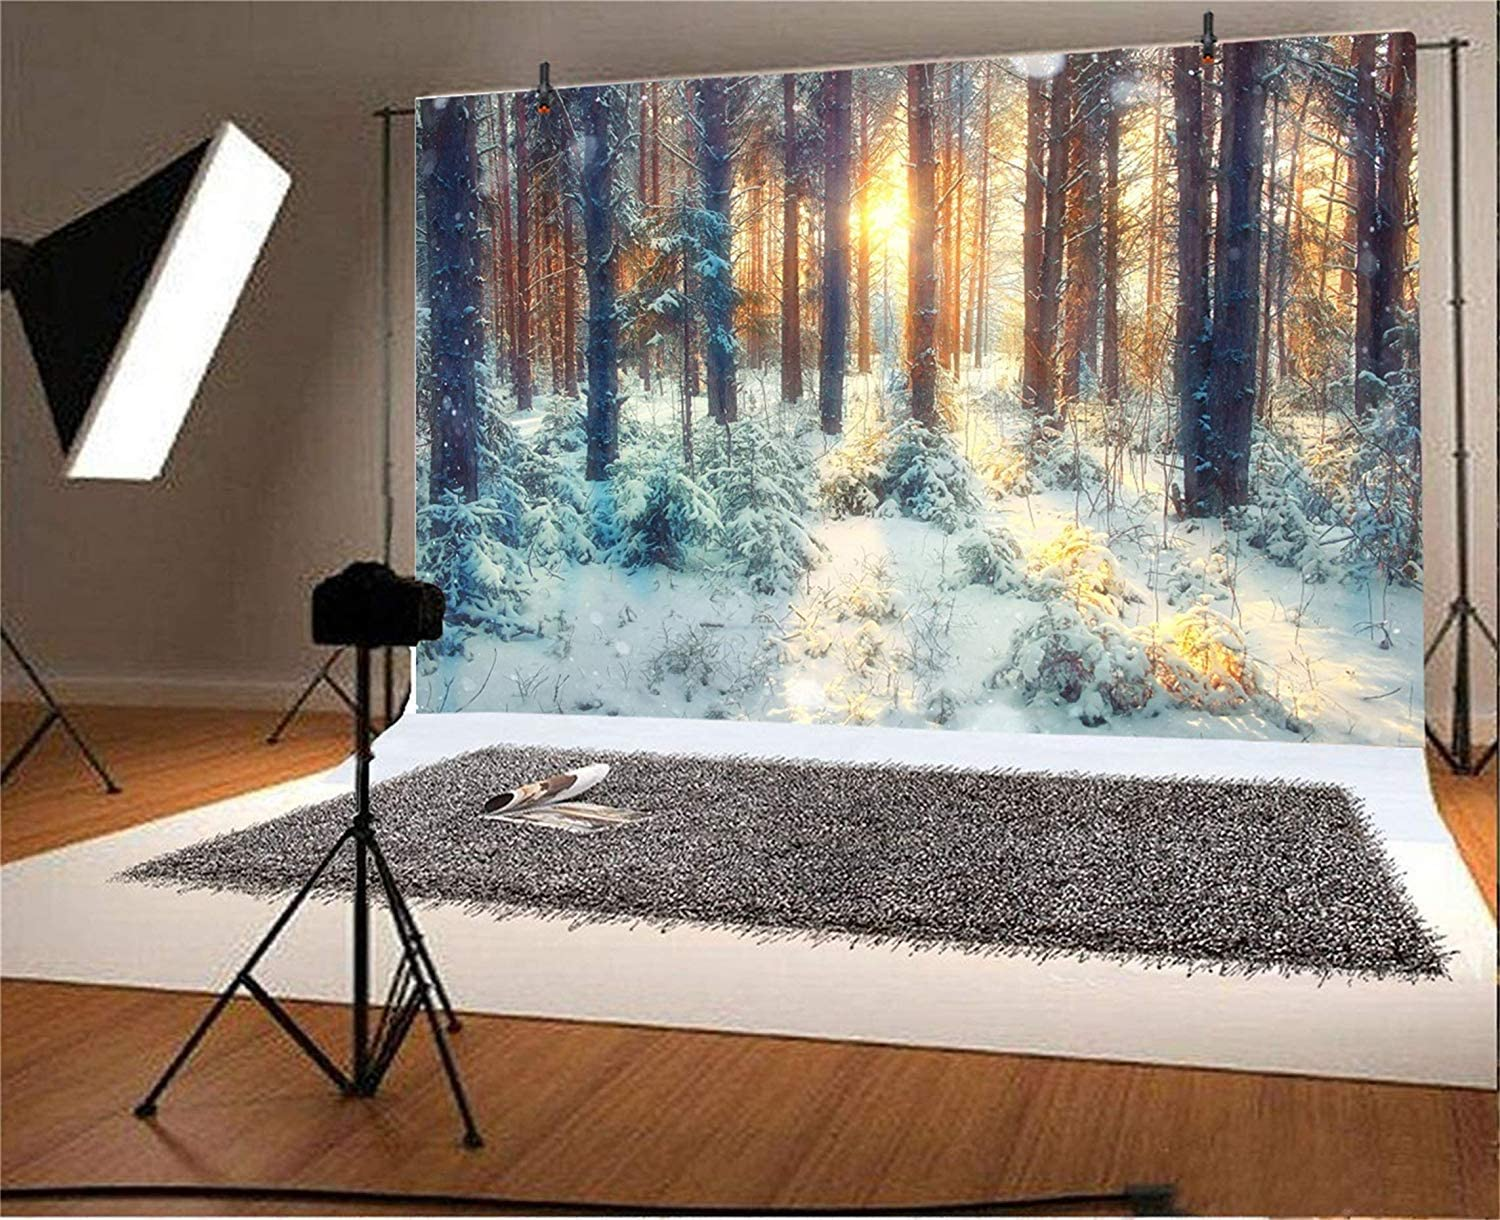 GoEoo 10x8ft Winter Forest Background Nature Snowy Landscape Photography Backdrop Snow Covered Trees Mountain Woods Snowfield Sunlight Christmas Holiday Travel New Year Photo Studio Vinyl Props